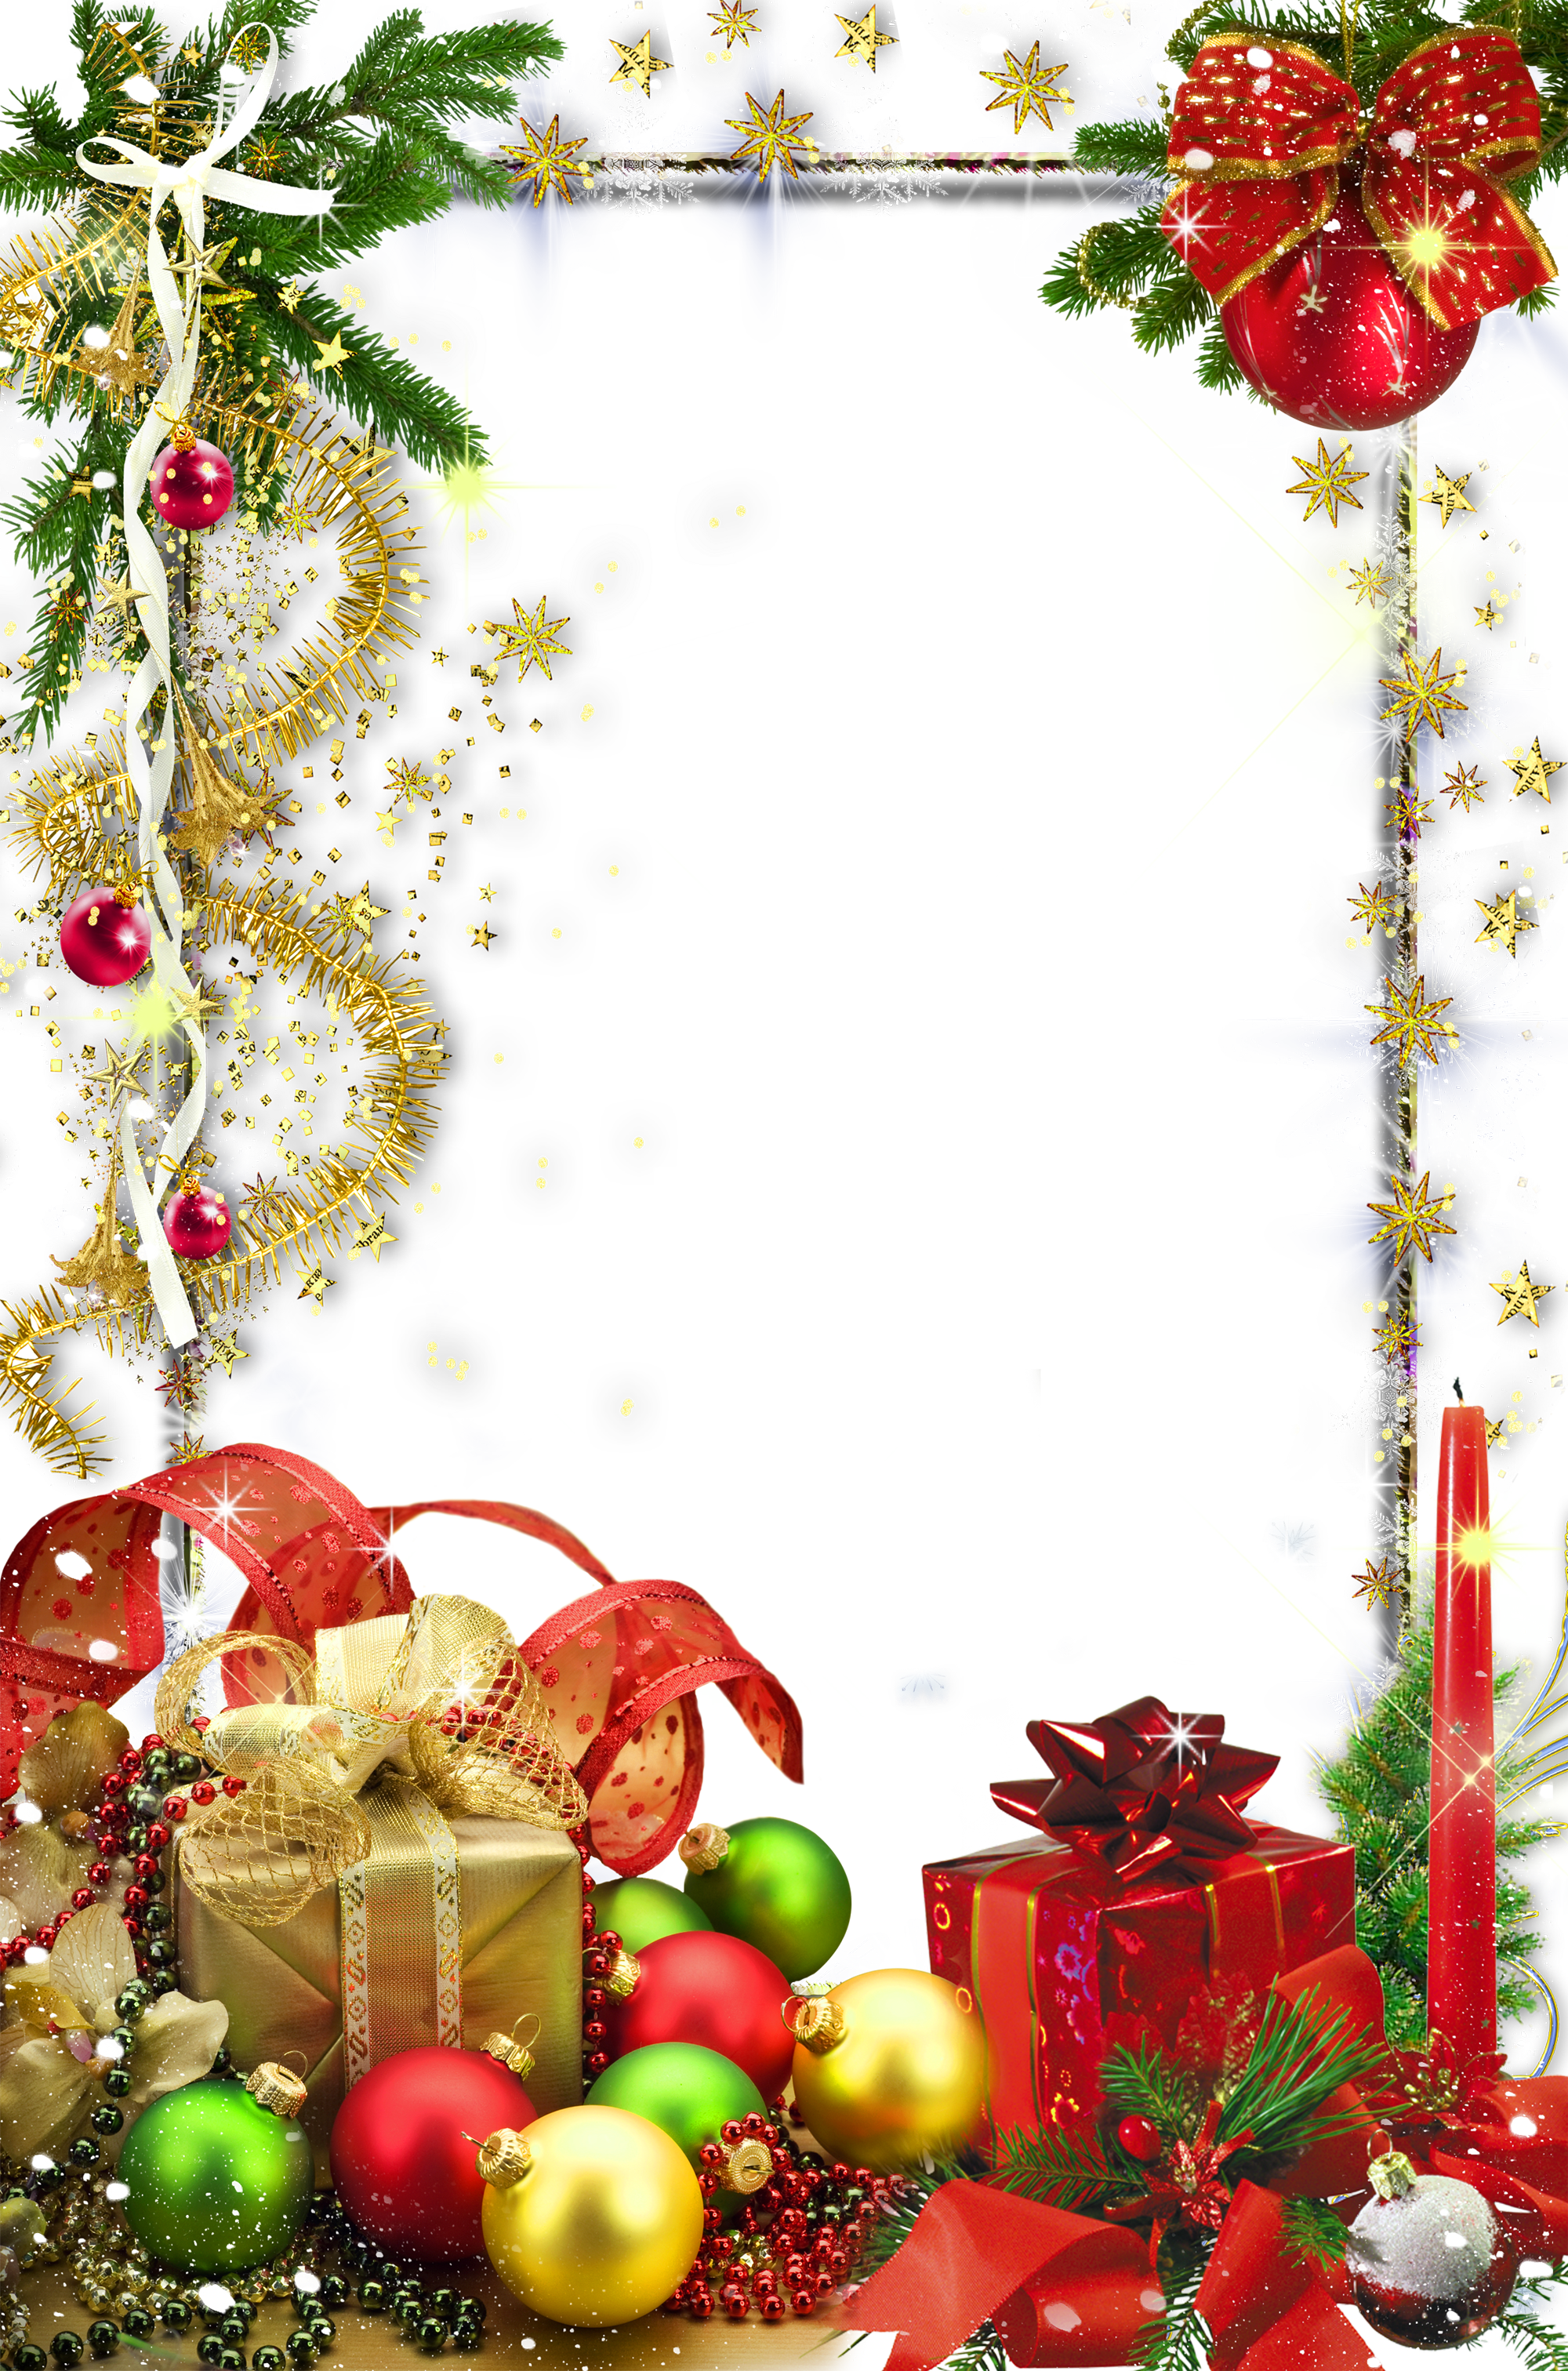 Christmas clipart backgrounds clip art royalty free stock Transparent Christmas Holiday Photo Frame | Christmas❆ClipArt, PNG ... clip art royalty free stock